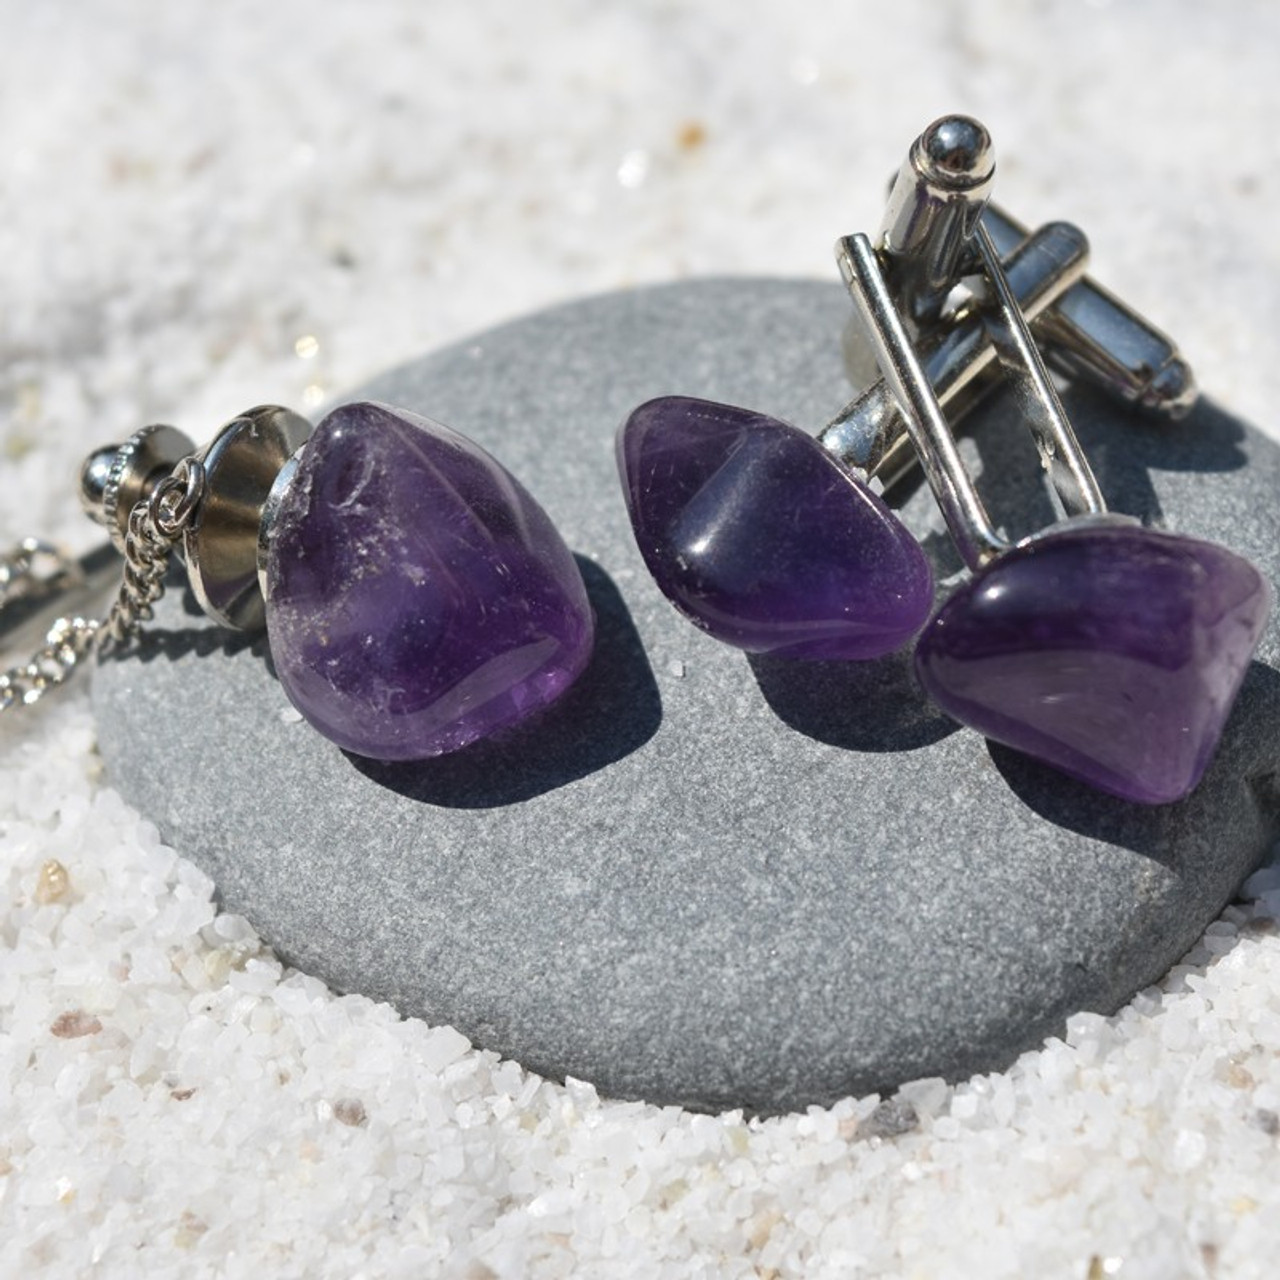 Tumbled Amethyst Stone Cufflinks and Tie Tack Set